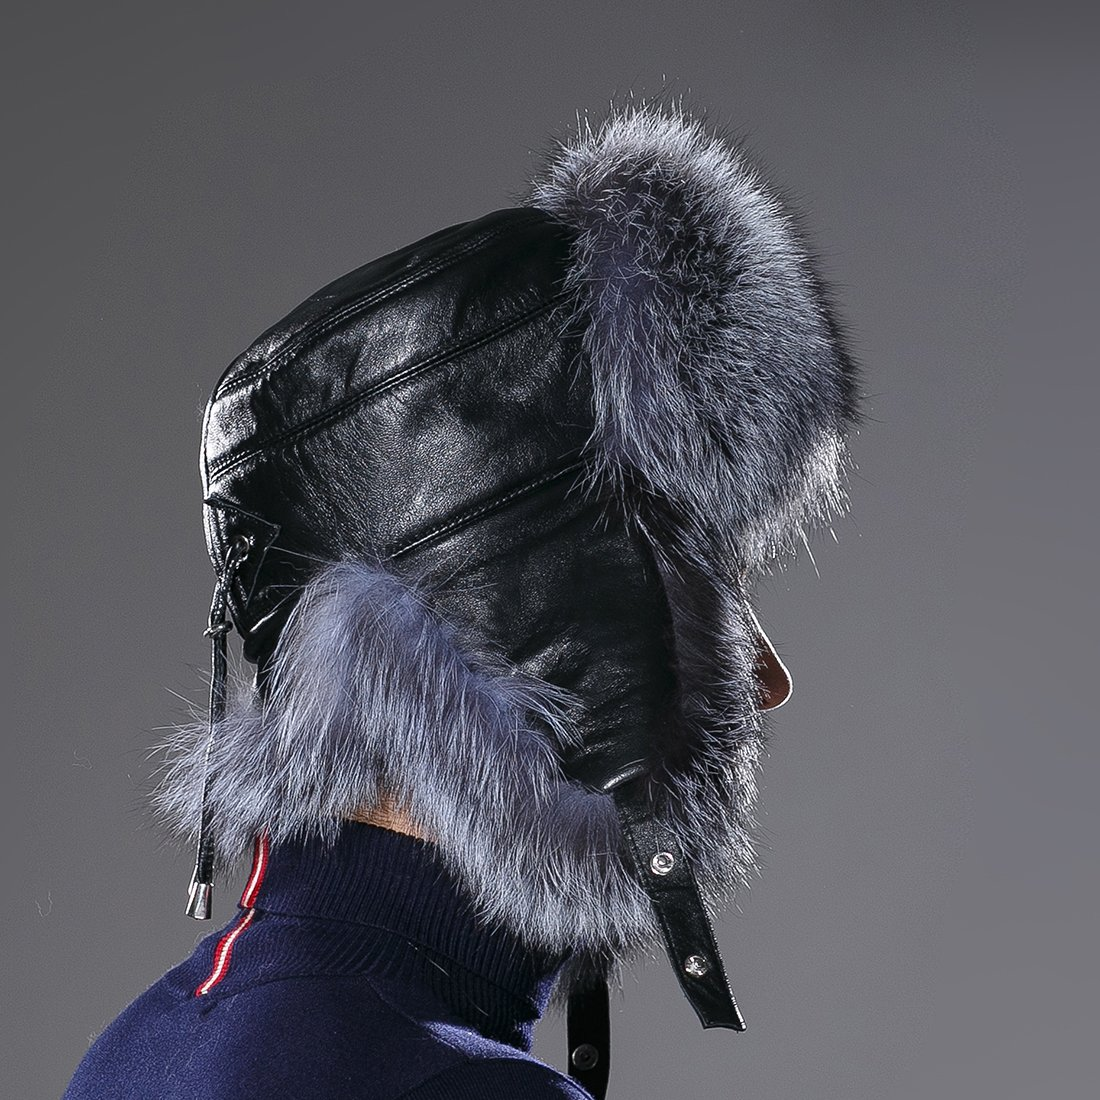 URSFUR Winter Russian Fur Hat Mens Real Silver Fox Fur Ushanka Trapper Cap by URSFUR (Image #7)